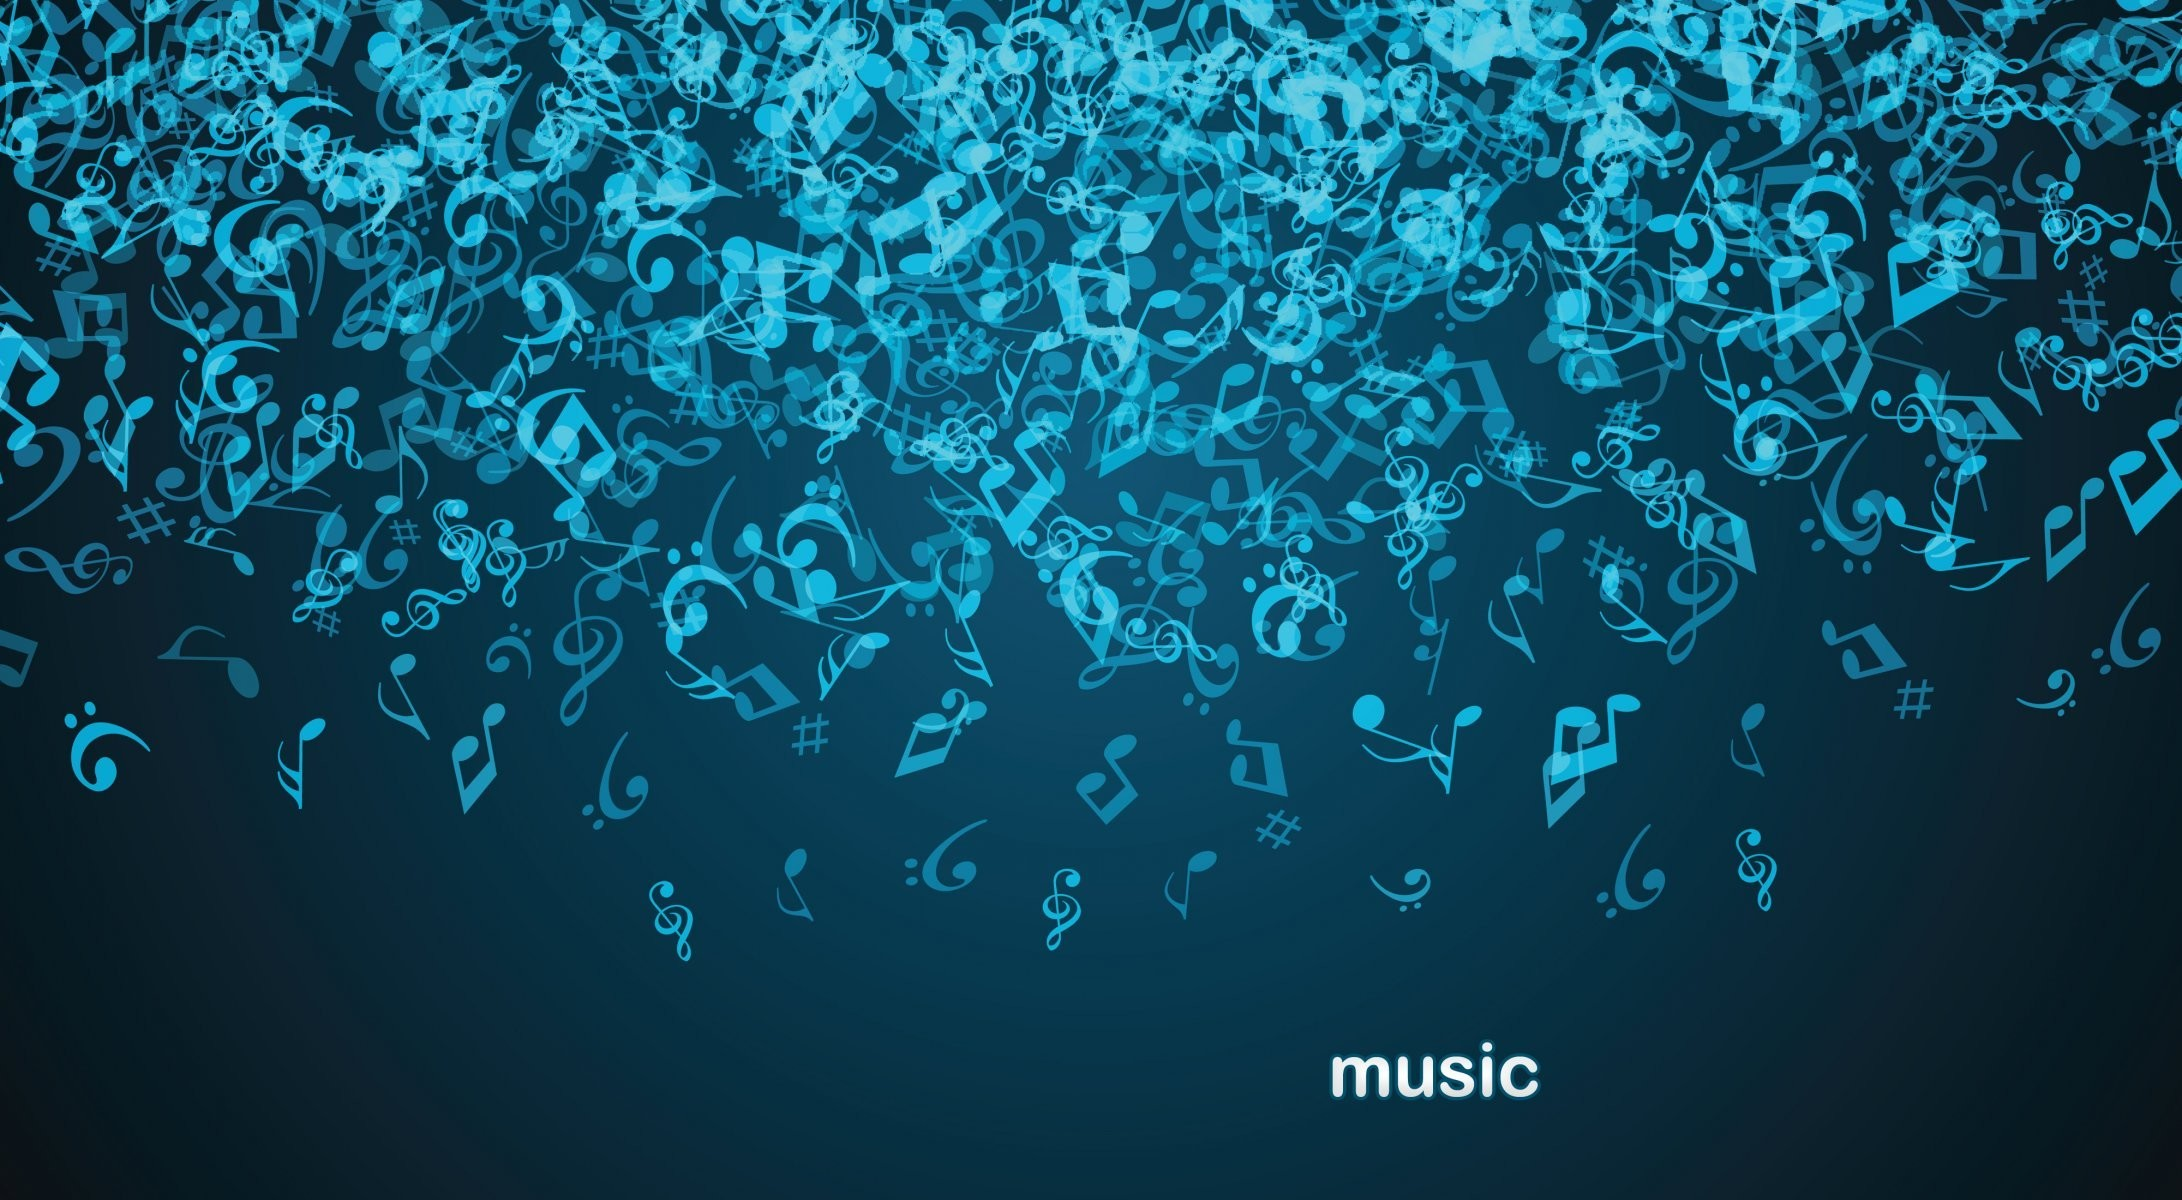 Abstract Music Wallpaper 64 Images